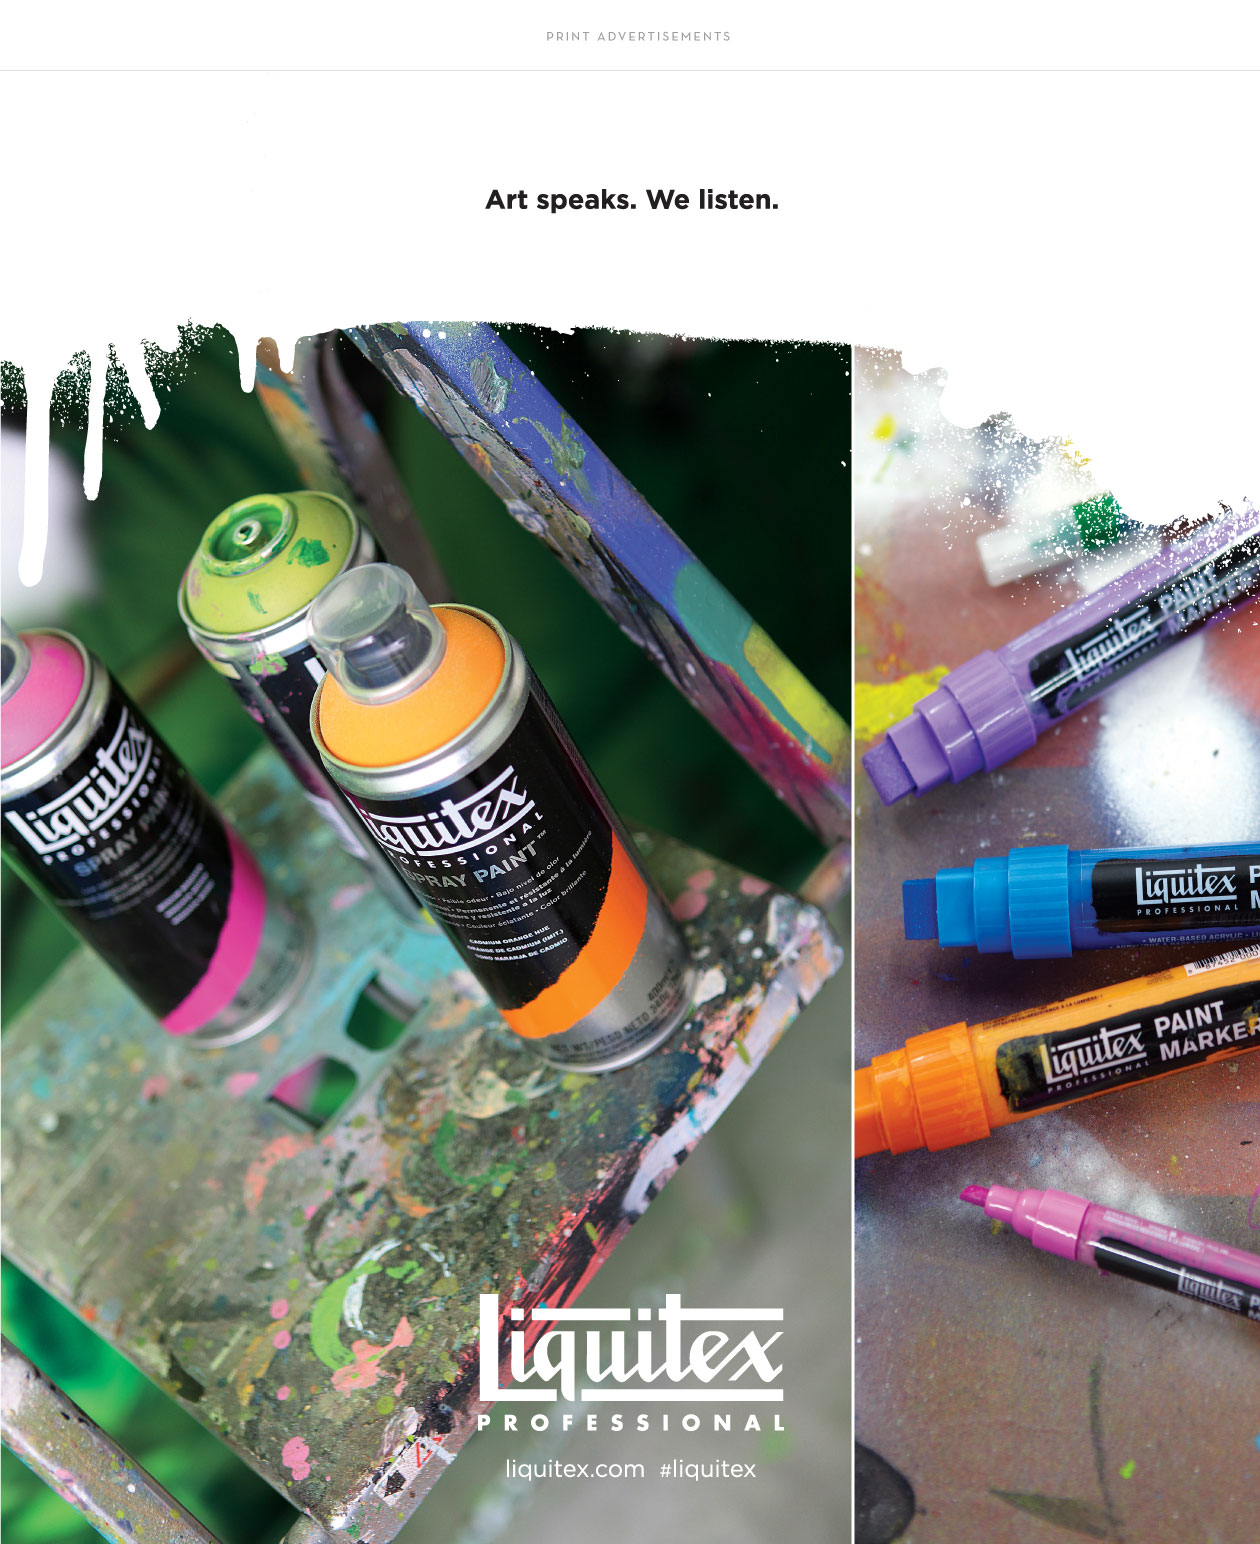 liquitex print advertisement by m studio